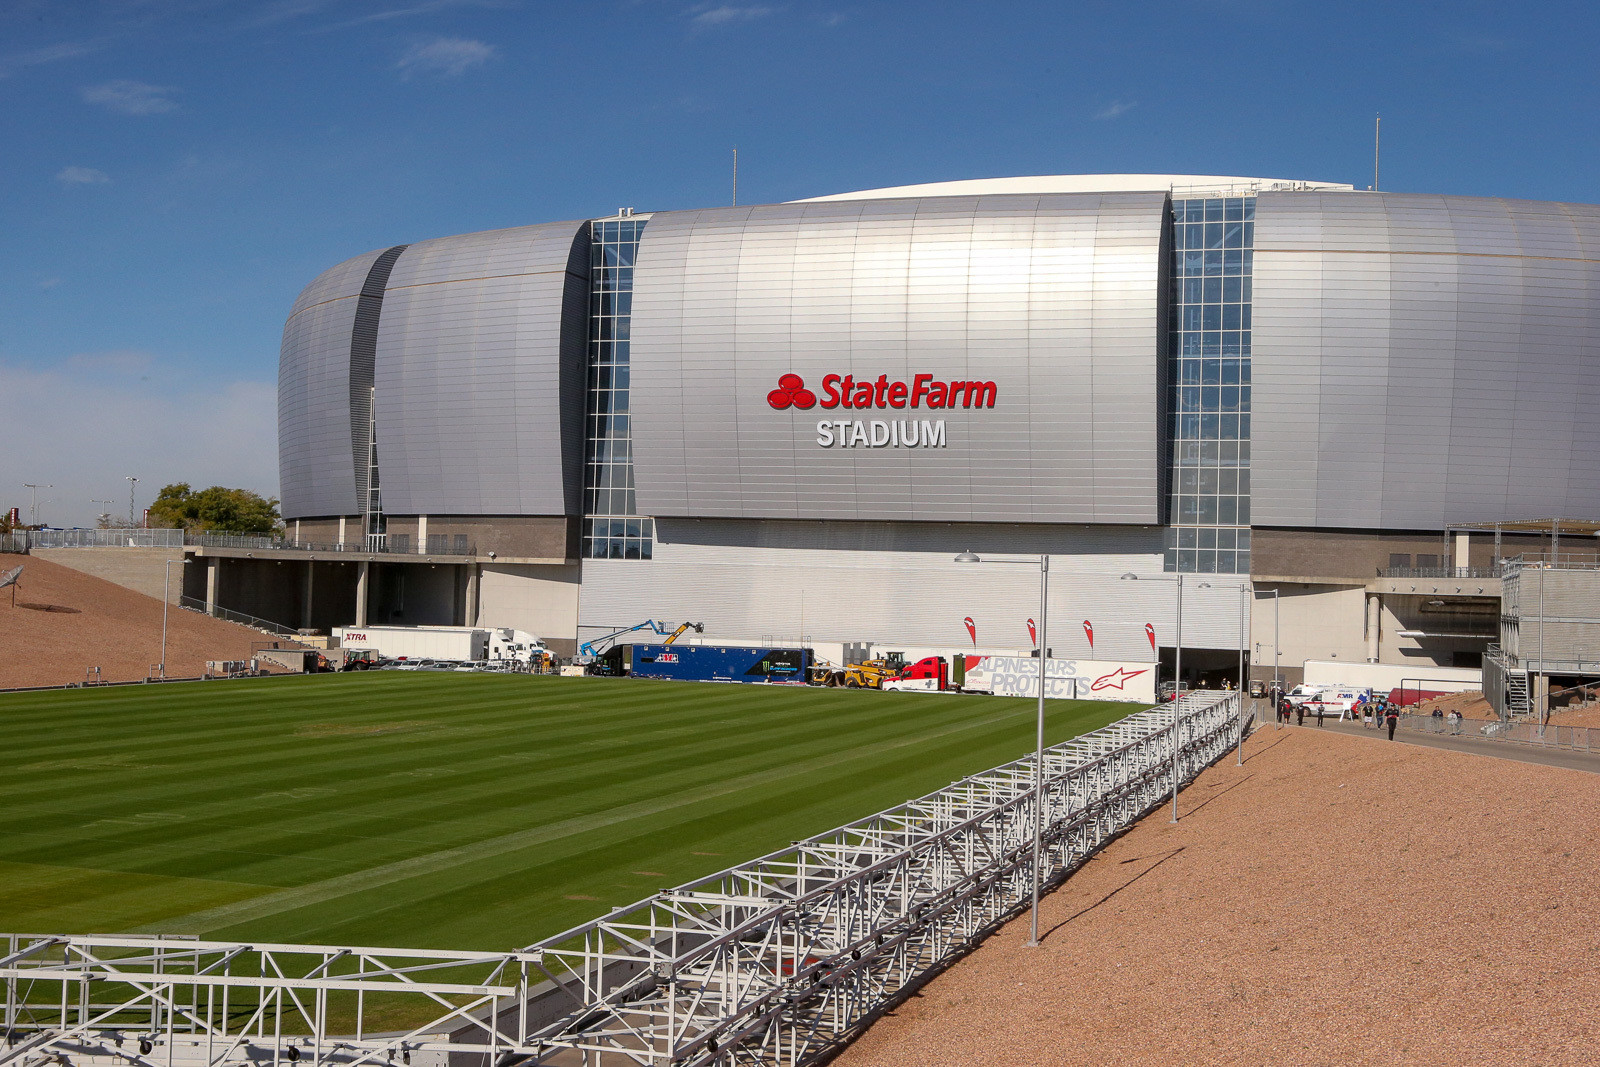 We're back at the giant spaceship in the desert, the State Farm Stadium. After some renovation last year, the grass field was back in its usual spot, rolled on its tracks outside of the stadium. How cool would it be if there was a Supercross track on the other side, ready to roll in?